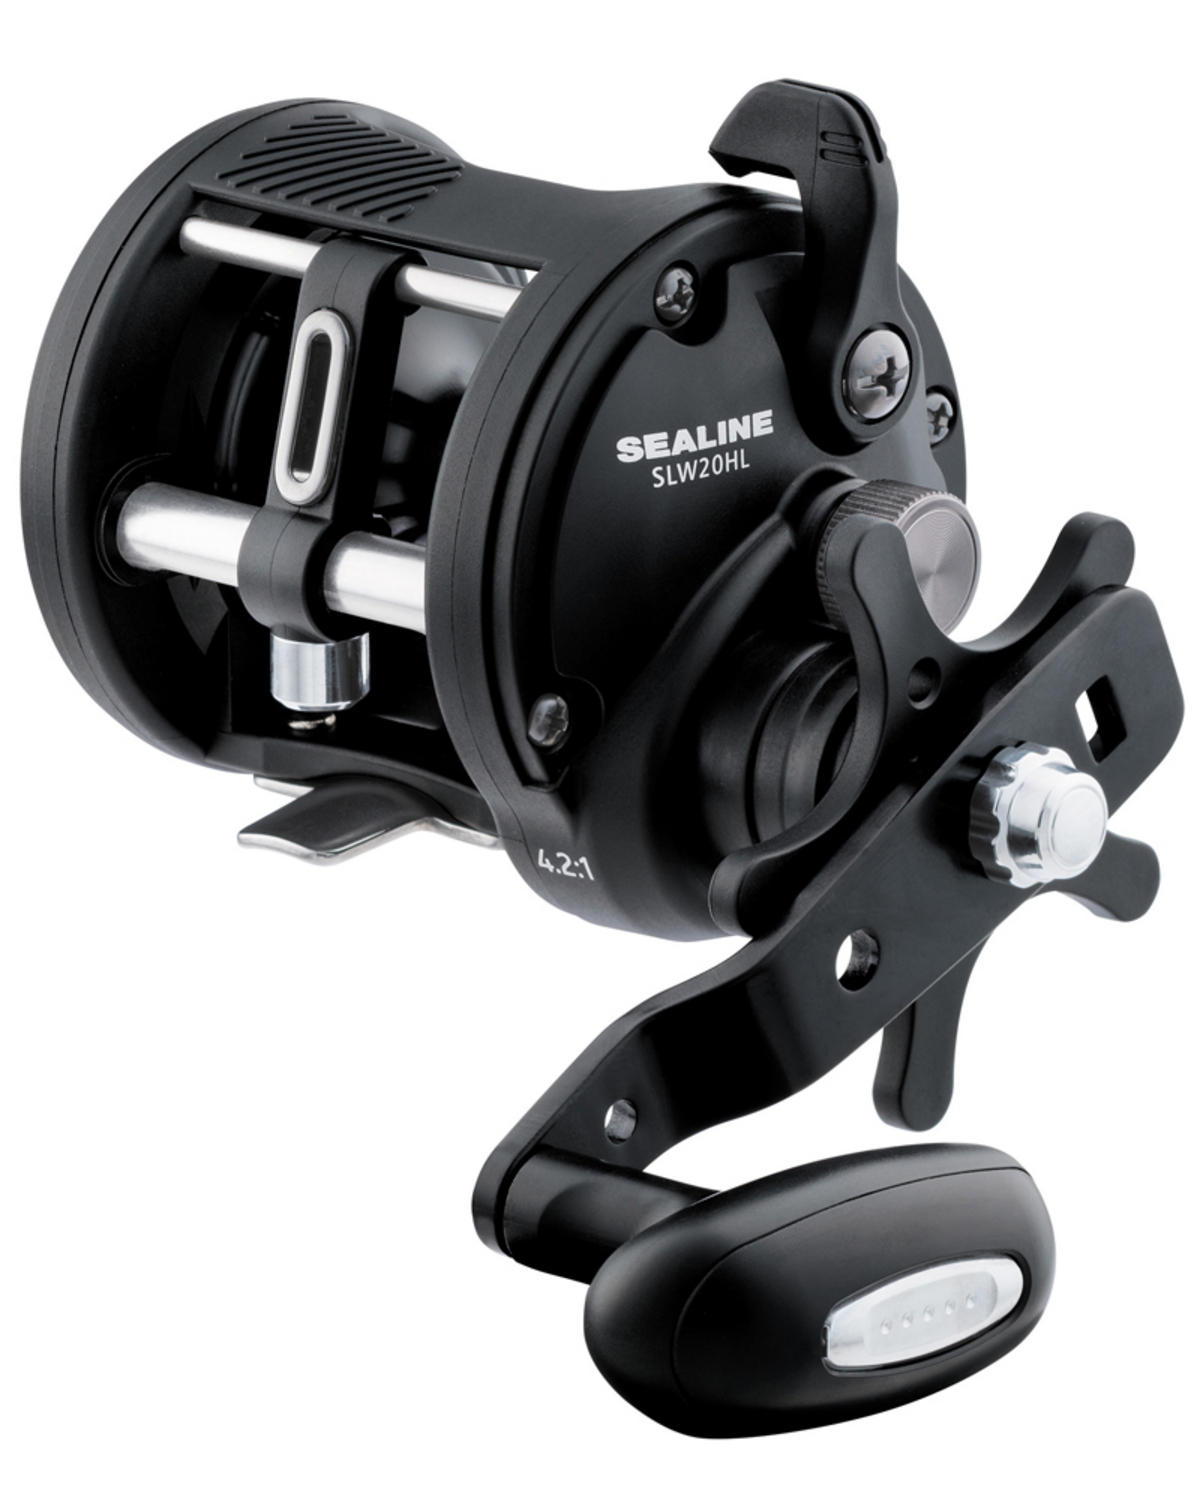 EX DISPLAY DAIWA SEALINE LEVEL WIND  MULTIPLIER FISHING REEL  SLW20HL